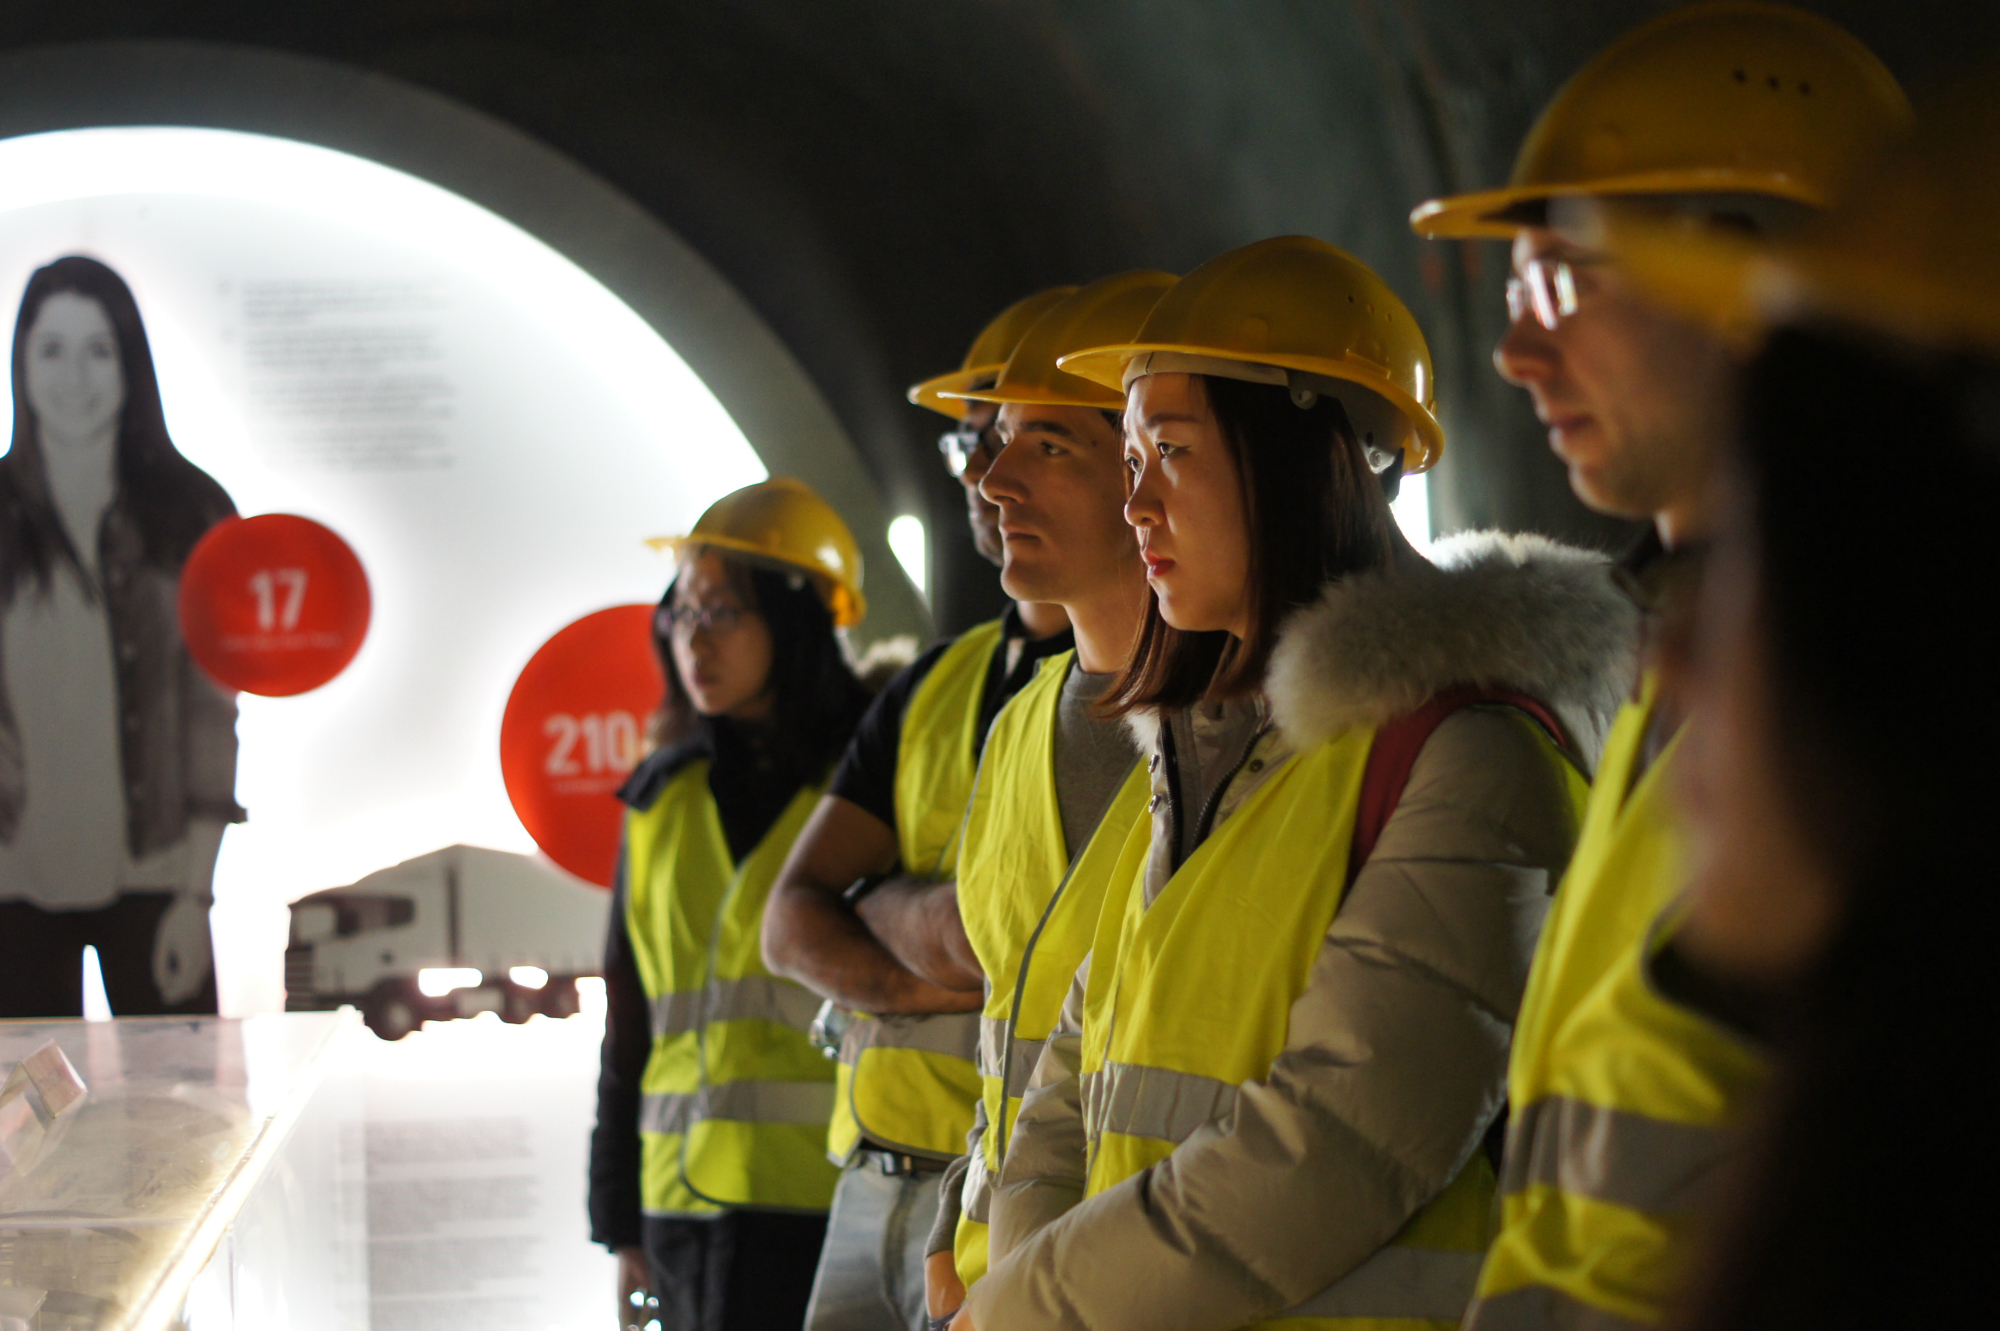 Students in the Gotthard Basistunnel